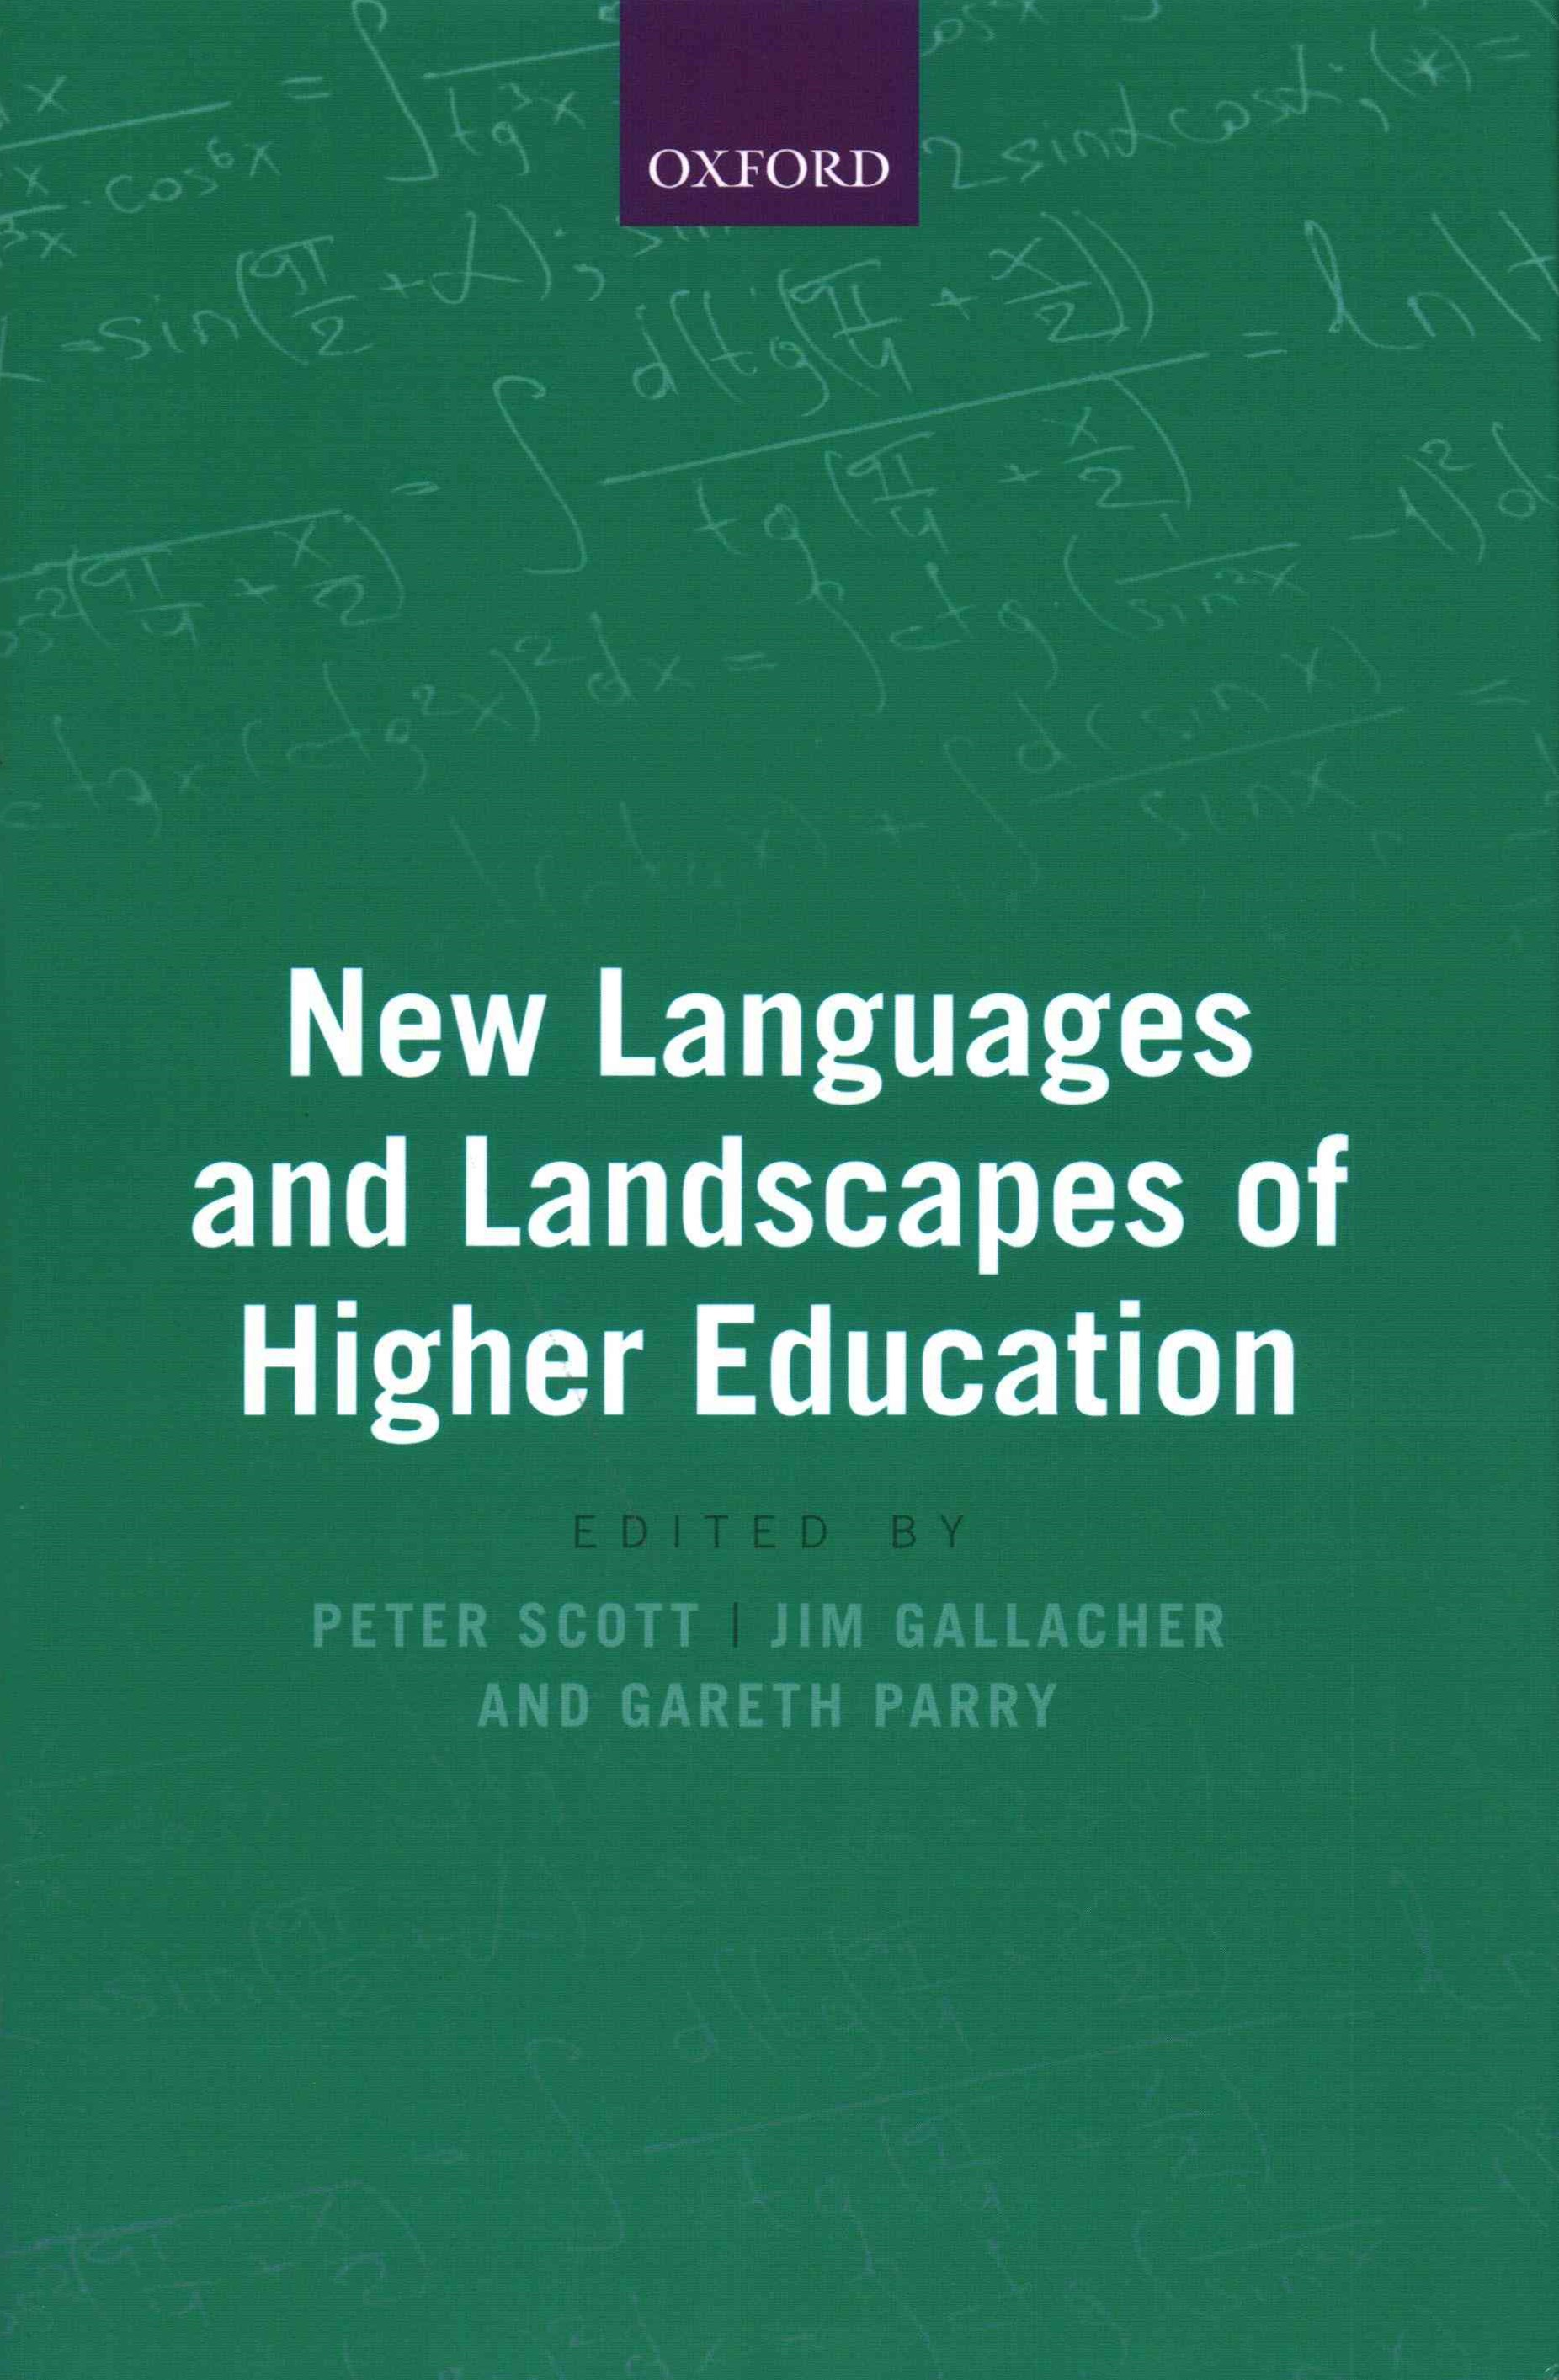 New Landscapes and Languages in Higher Education